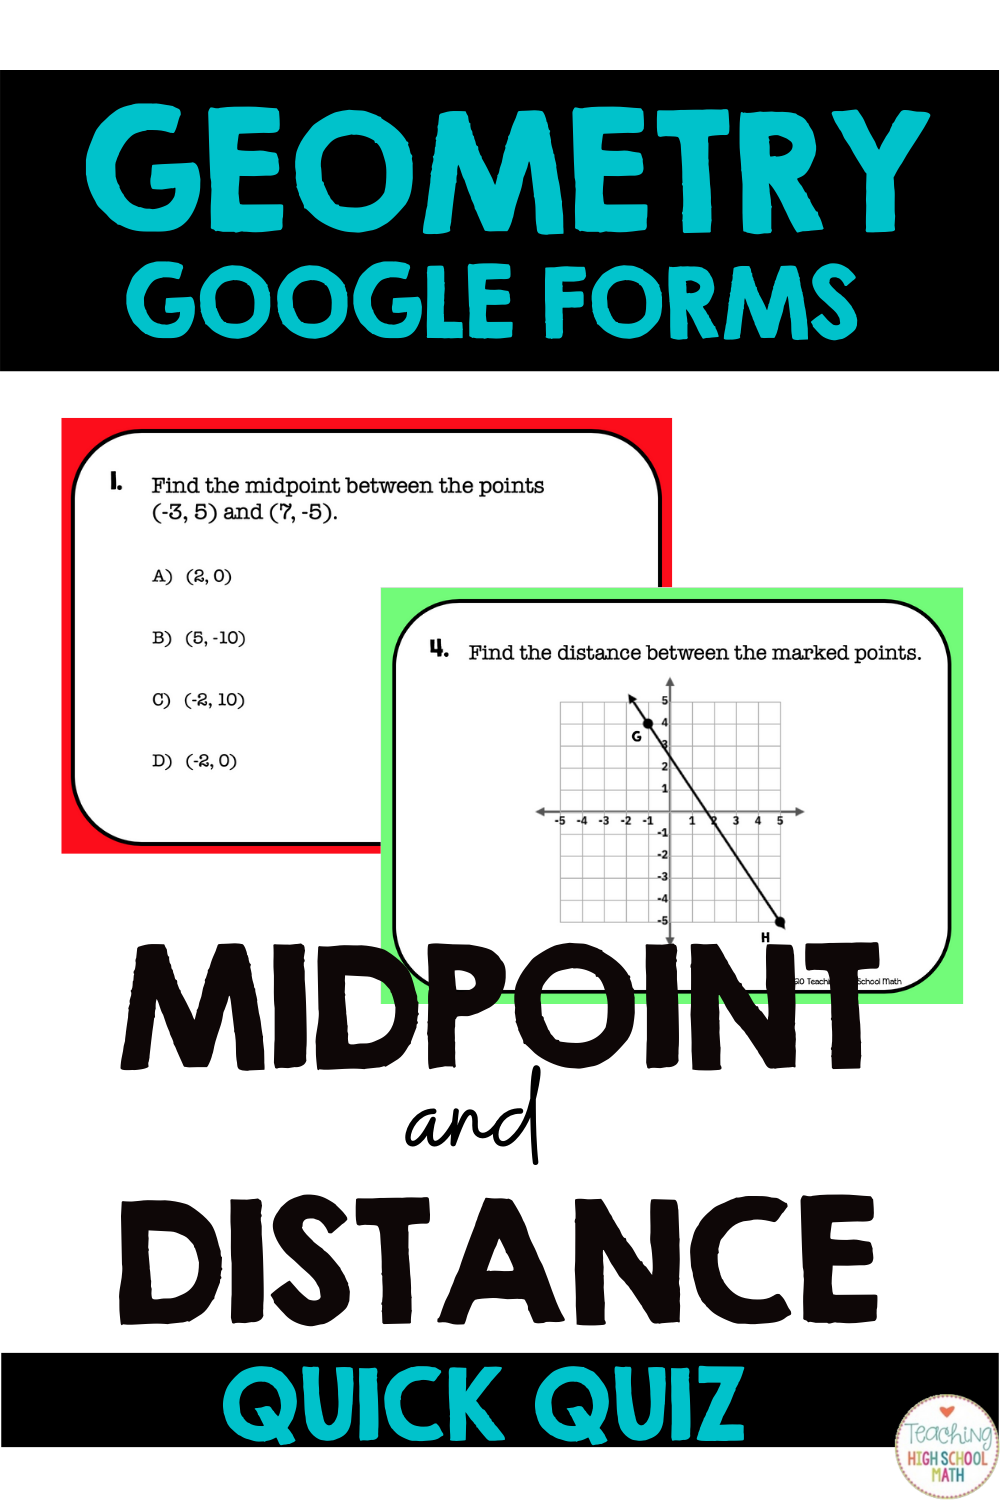 Algebra Geometry Midpoint And Distance Formula Google Forms Quick Quiz Distance Formula Google Forms Midpoint Formula